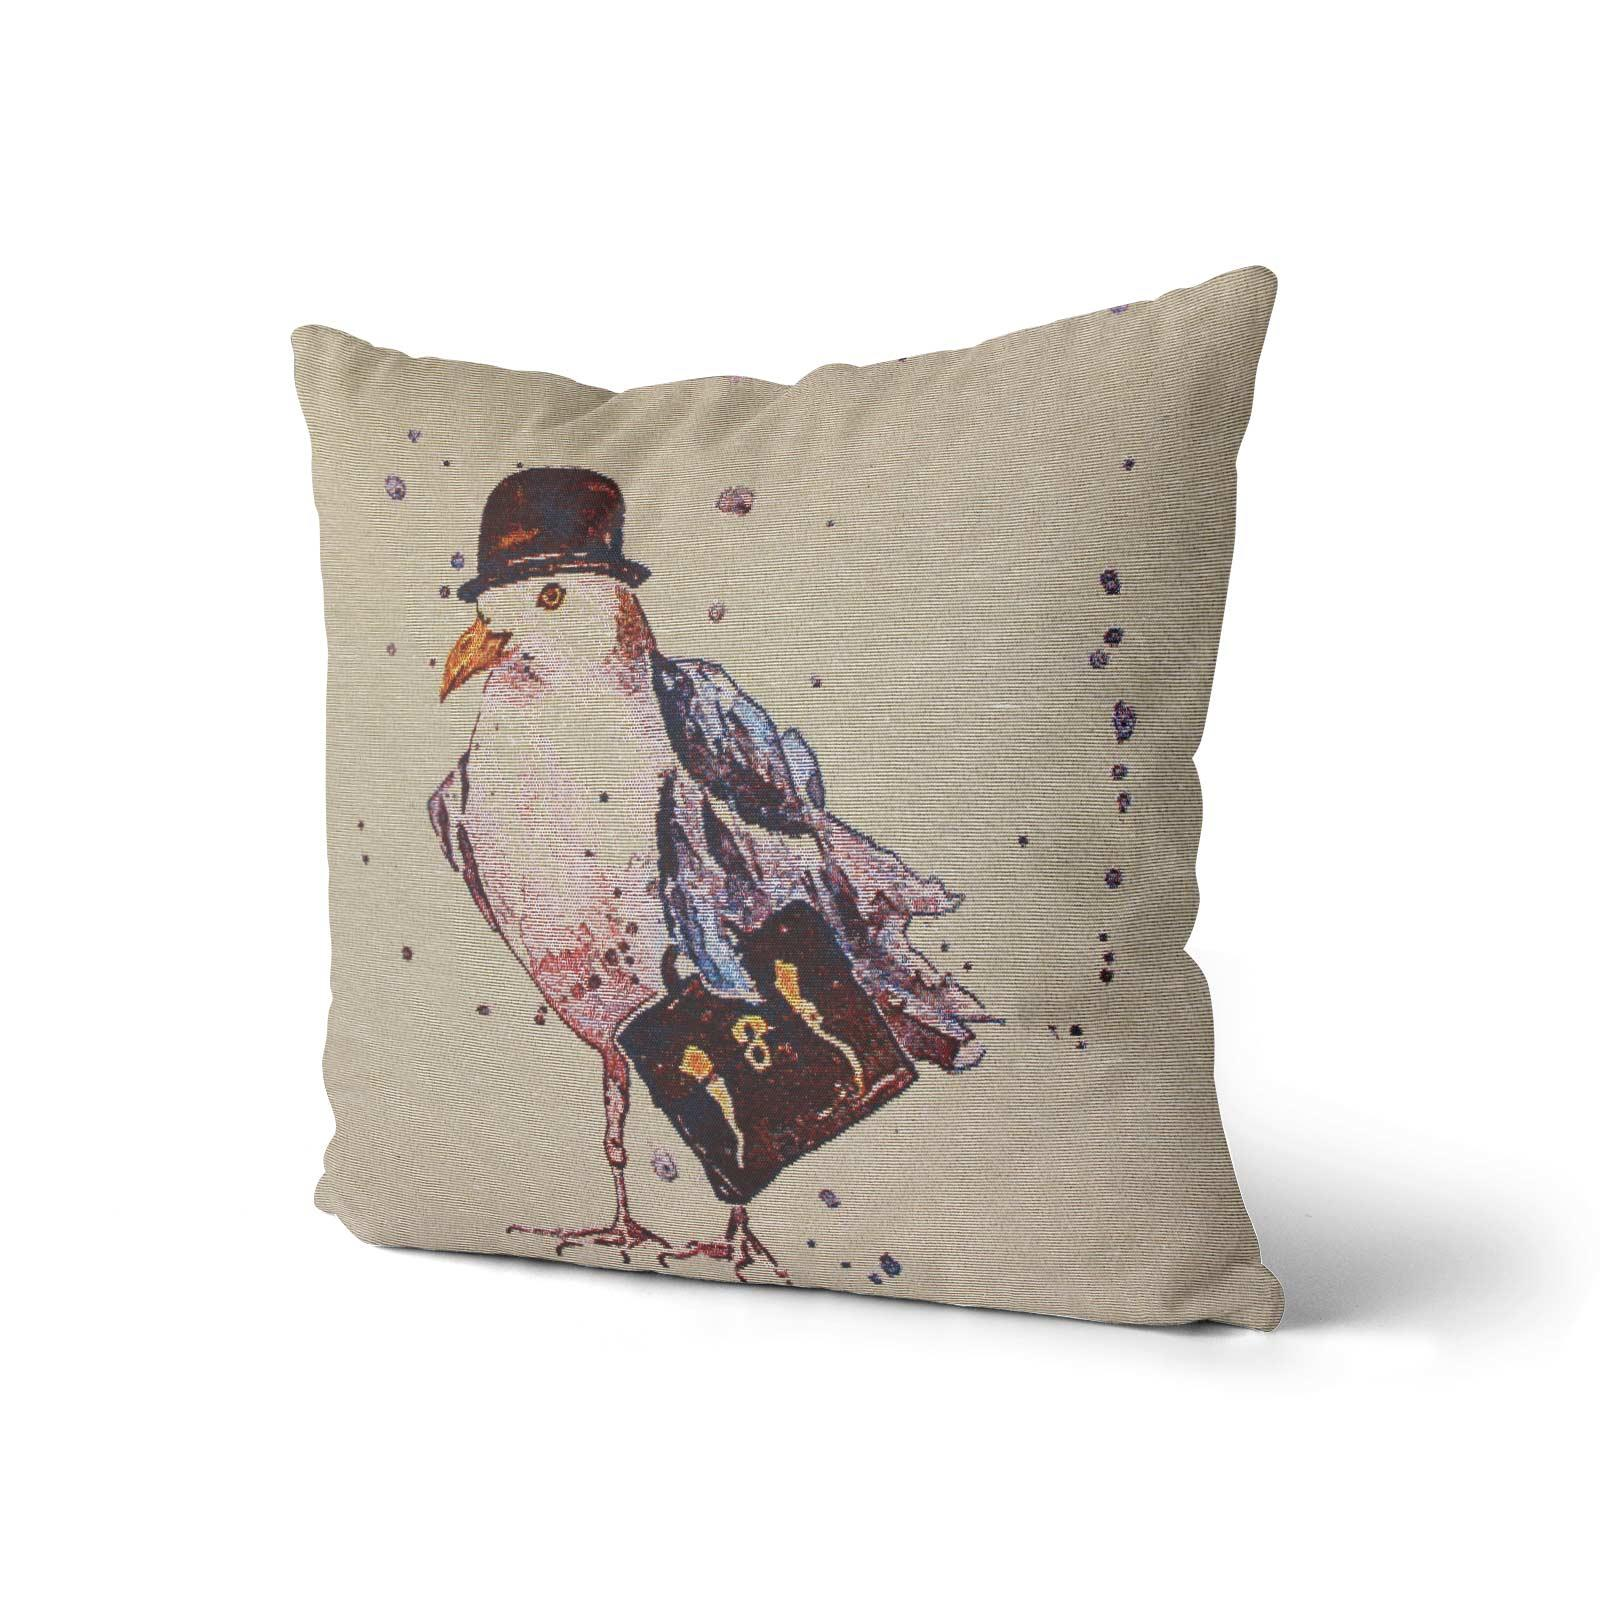 Tapestry-Cushion-Covers-Vintage-Pillow-Cover-Collection-18-034-45cm-Filled-Cushions thumbnail 140